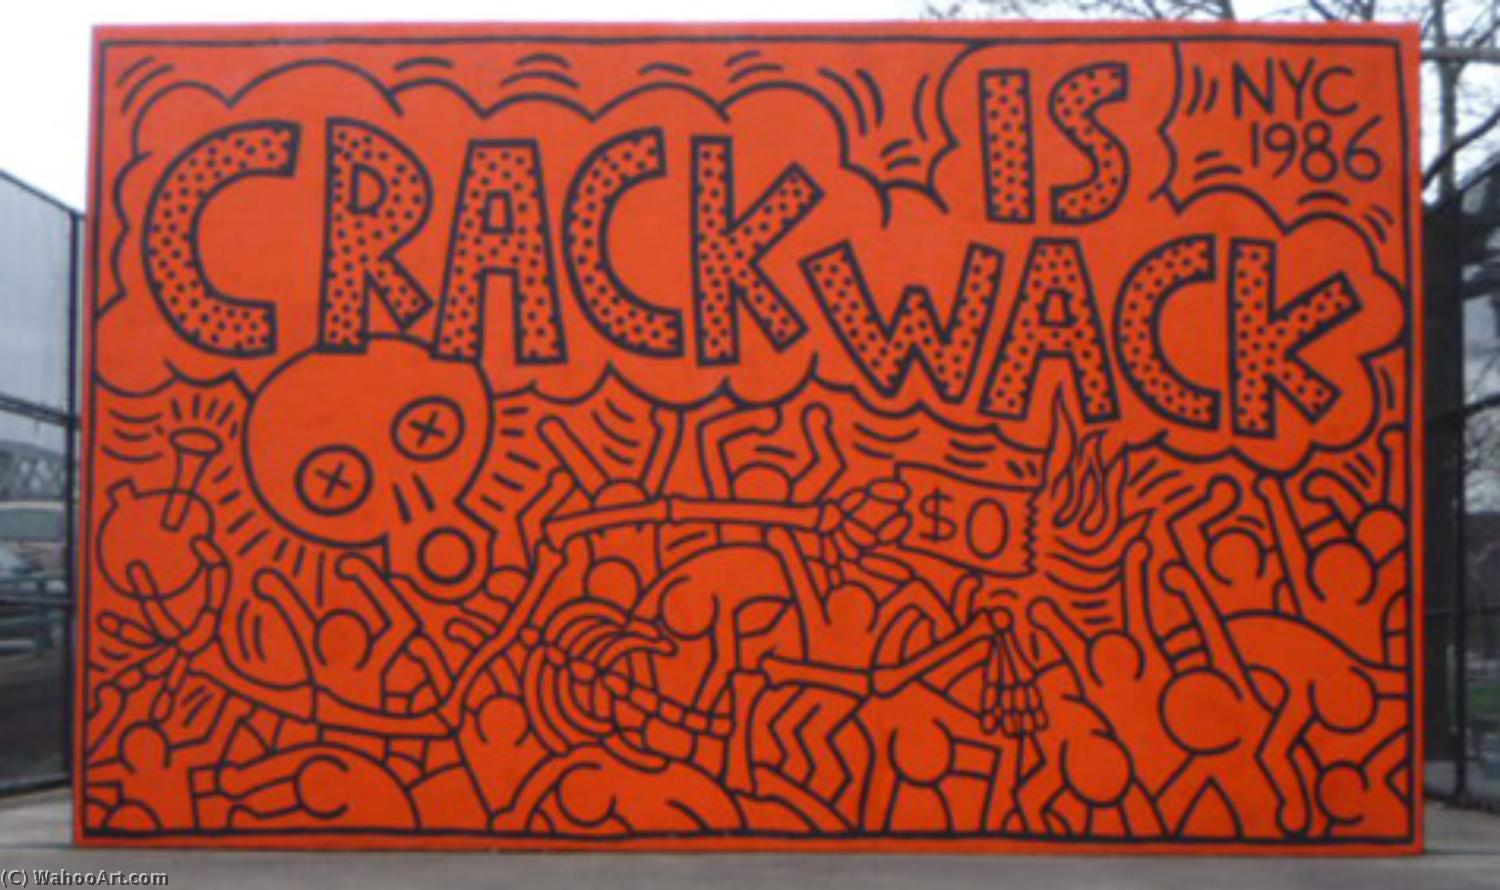 Crack is wack by Keith Haring (1958-1990, United States) | Museum Quality Reproductions | WahooArt.com